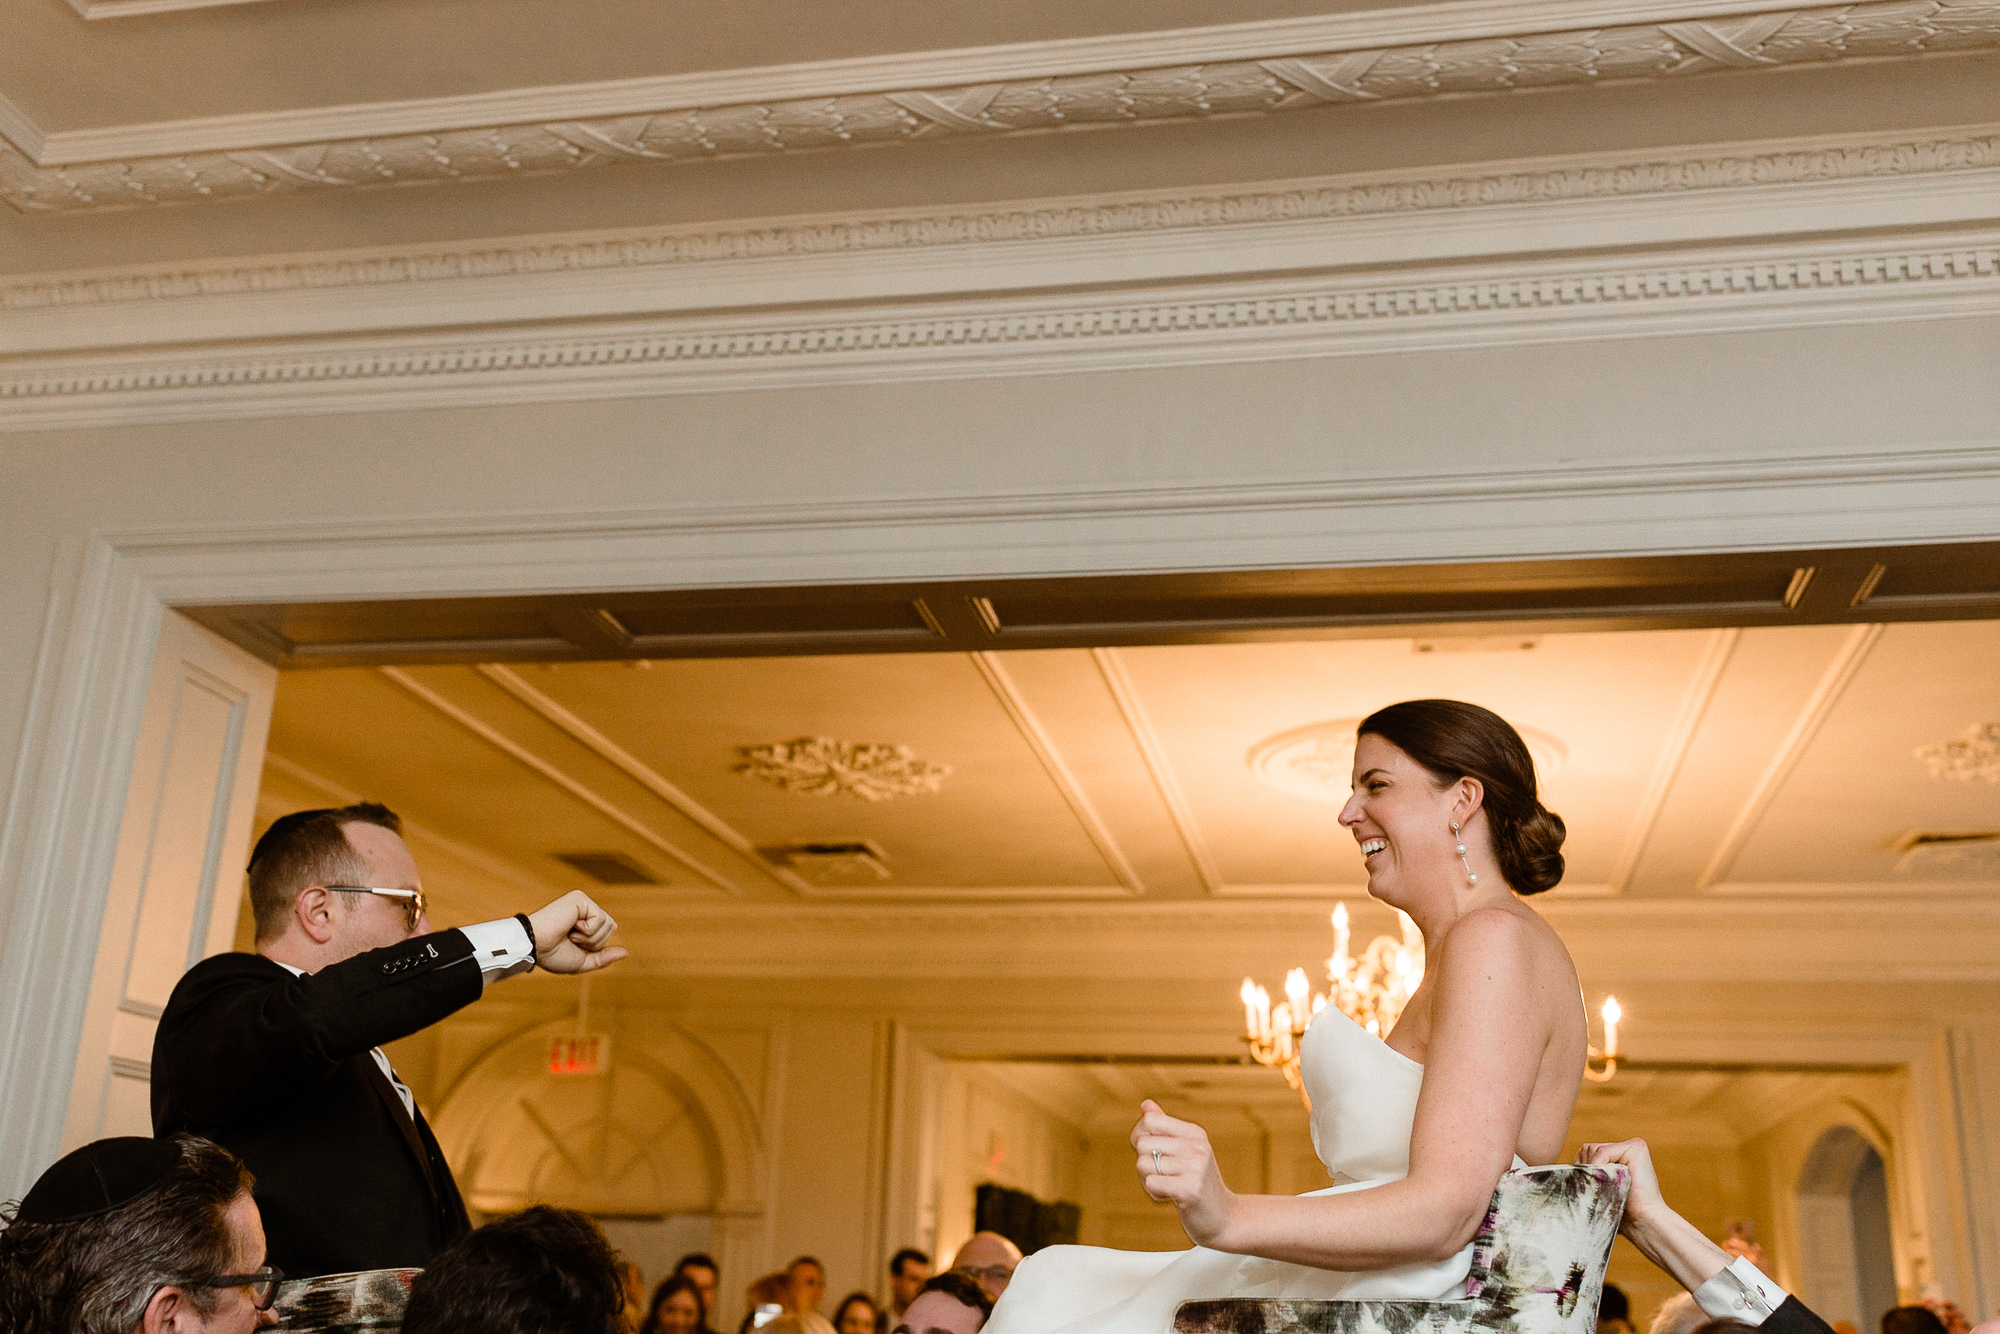 54-Graydon-Hall-Manor-Real-Wedding-Documentary-Wedding-Photographer-Toronto-Ontario-101.JPG-54.JPG